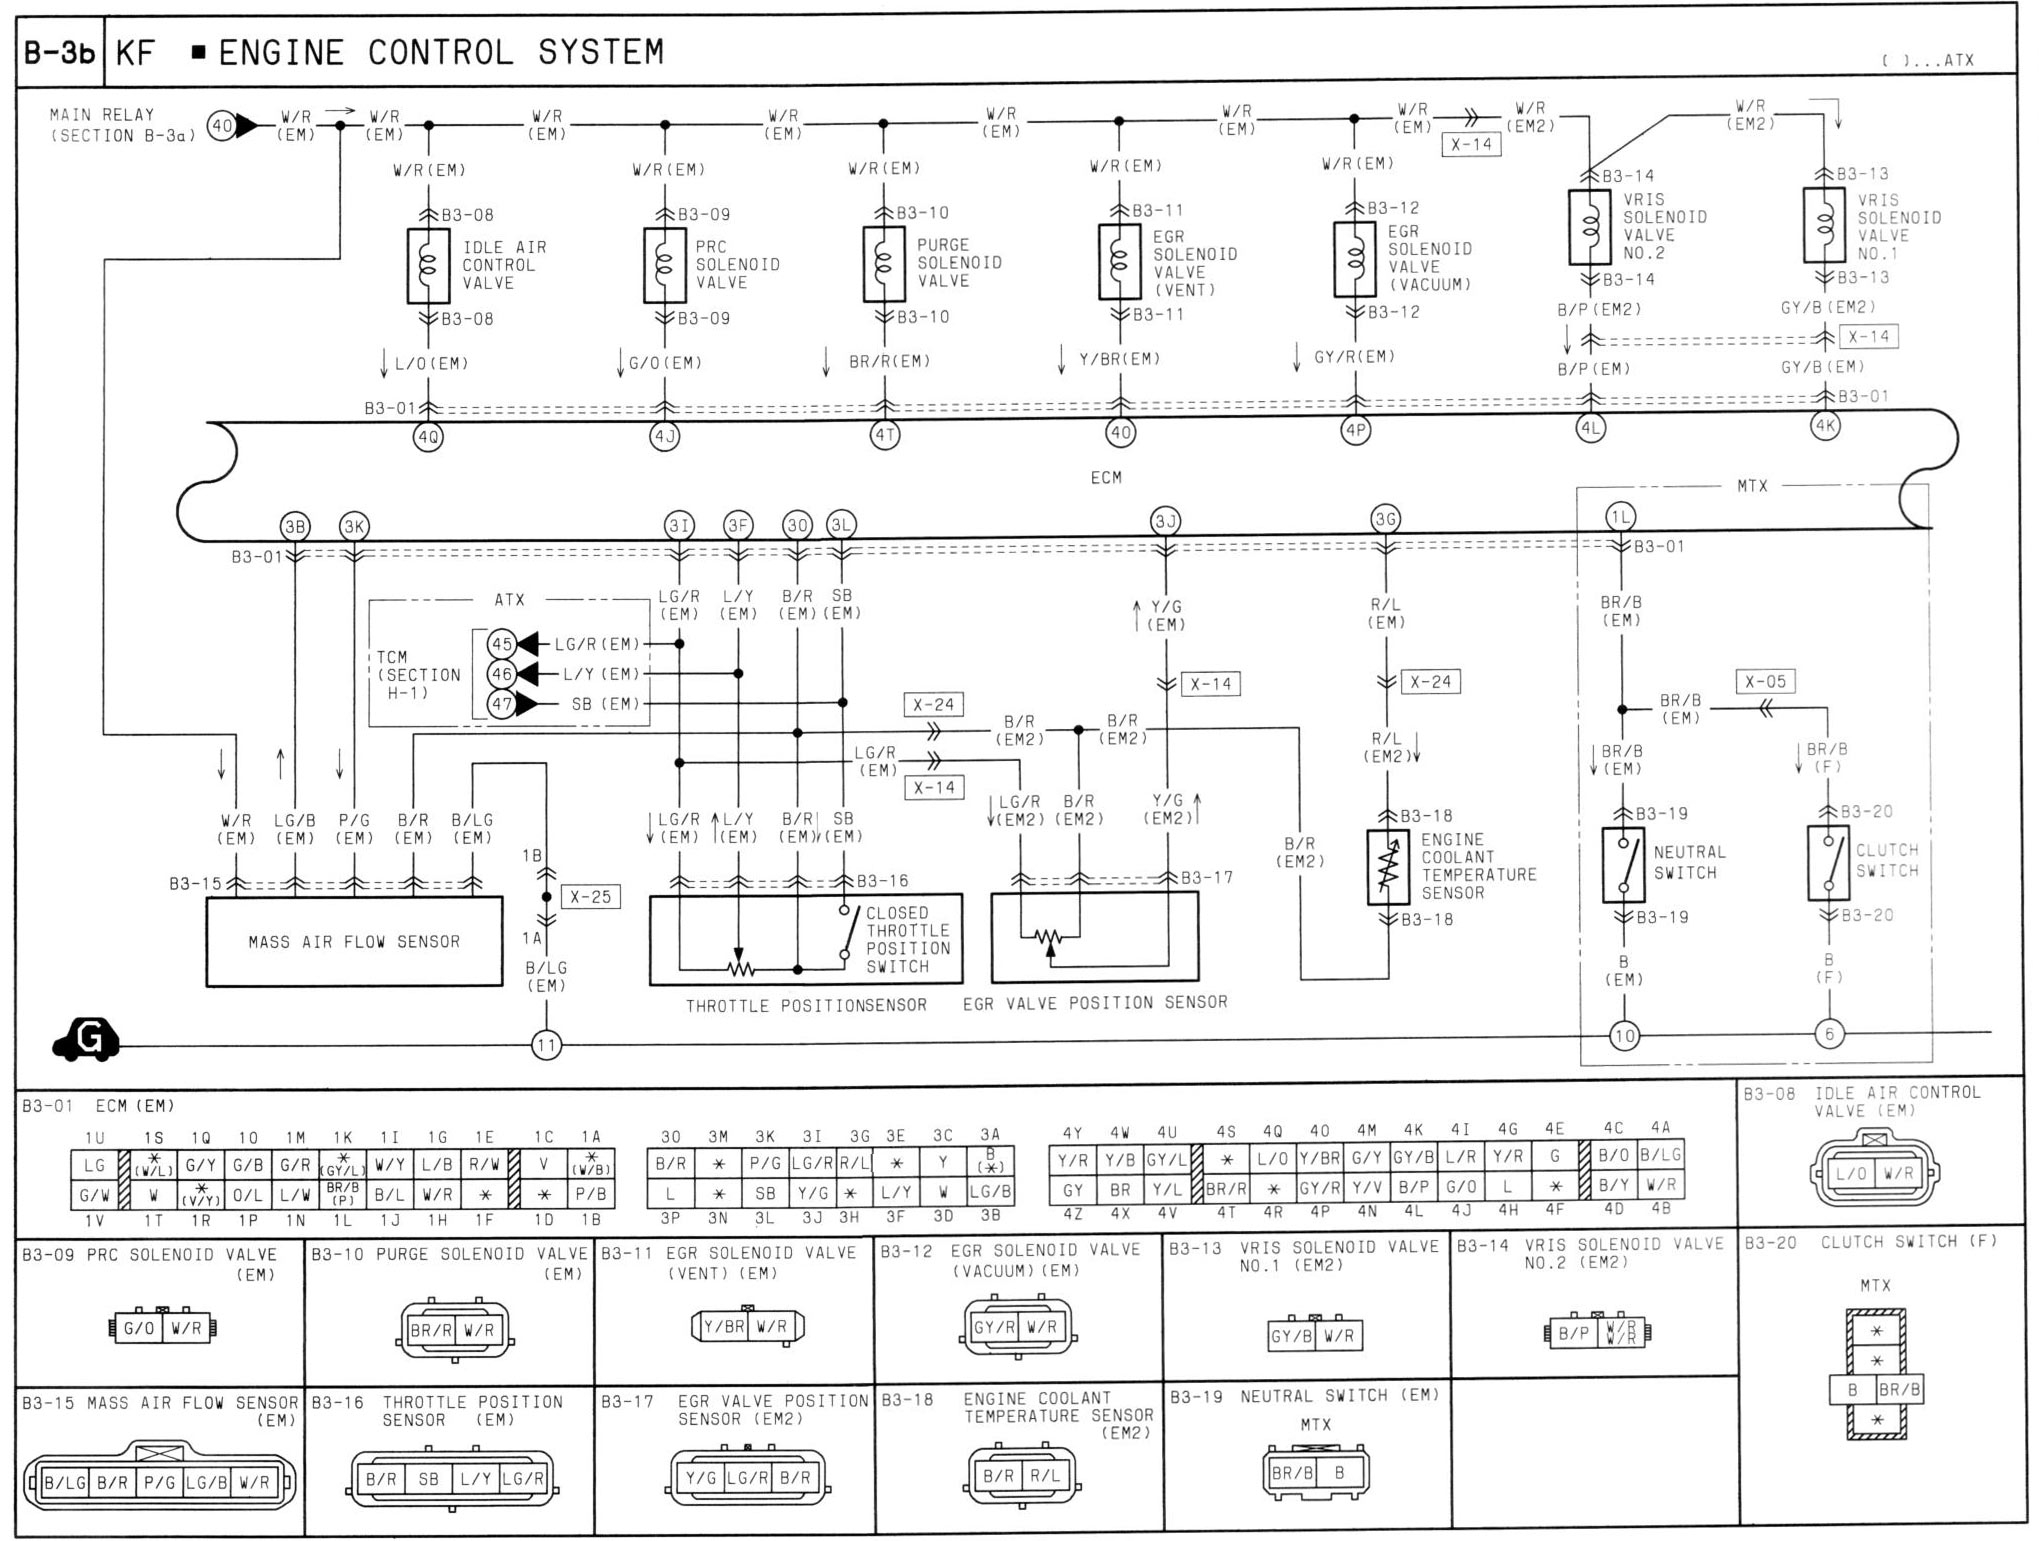 Wiring Diagram Mazda 3 | Wiring Diagram on